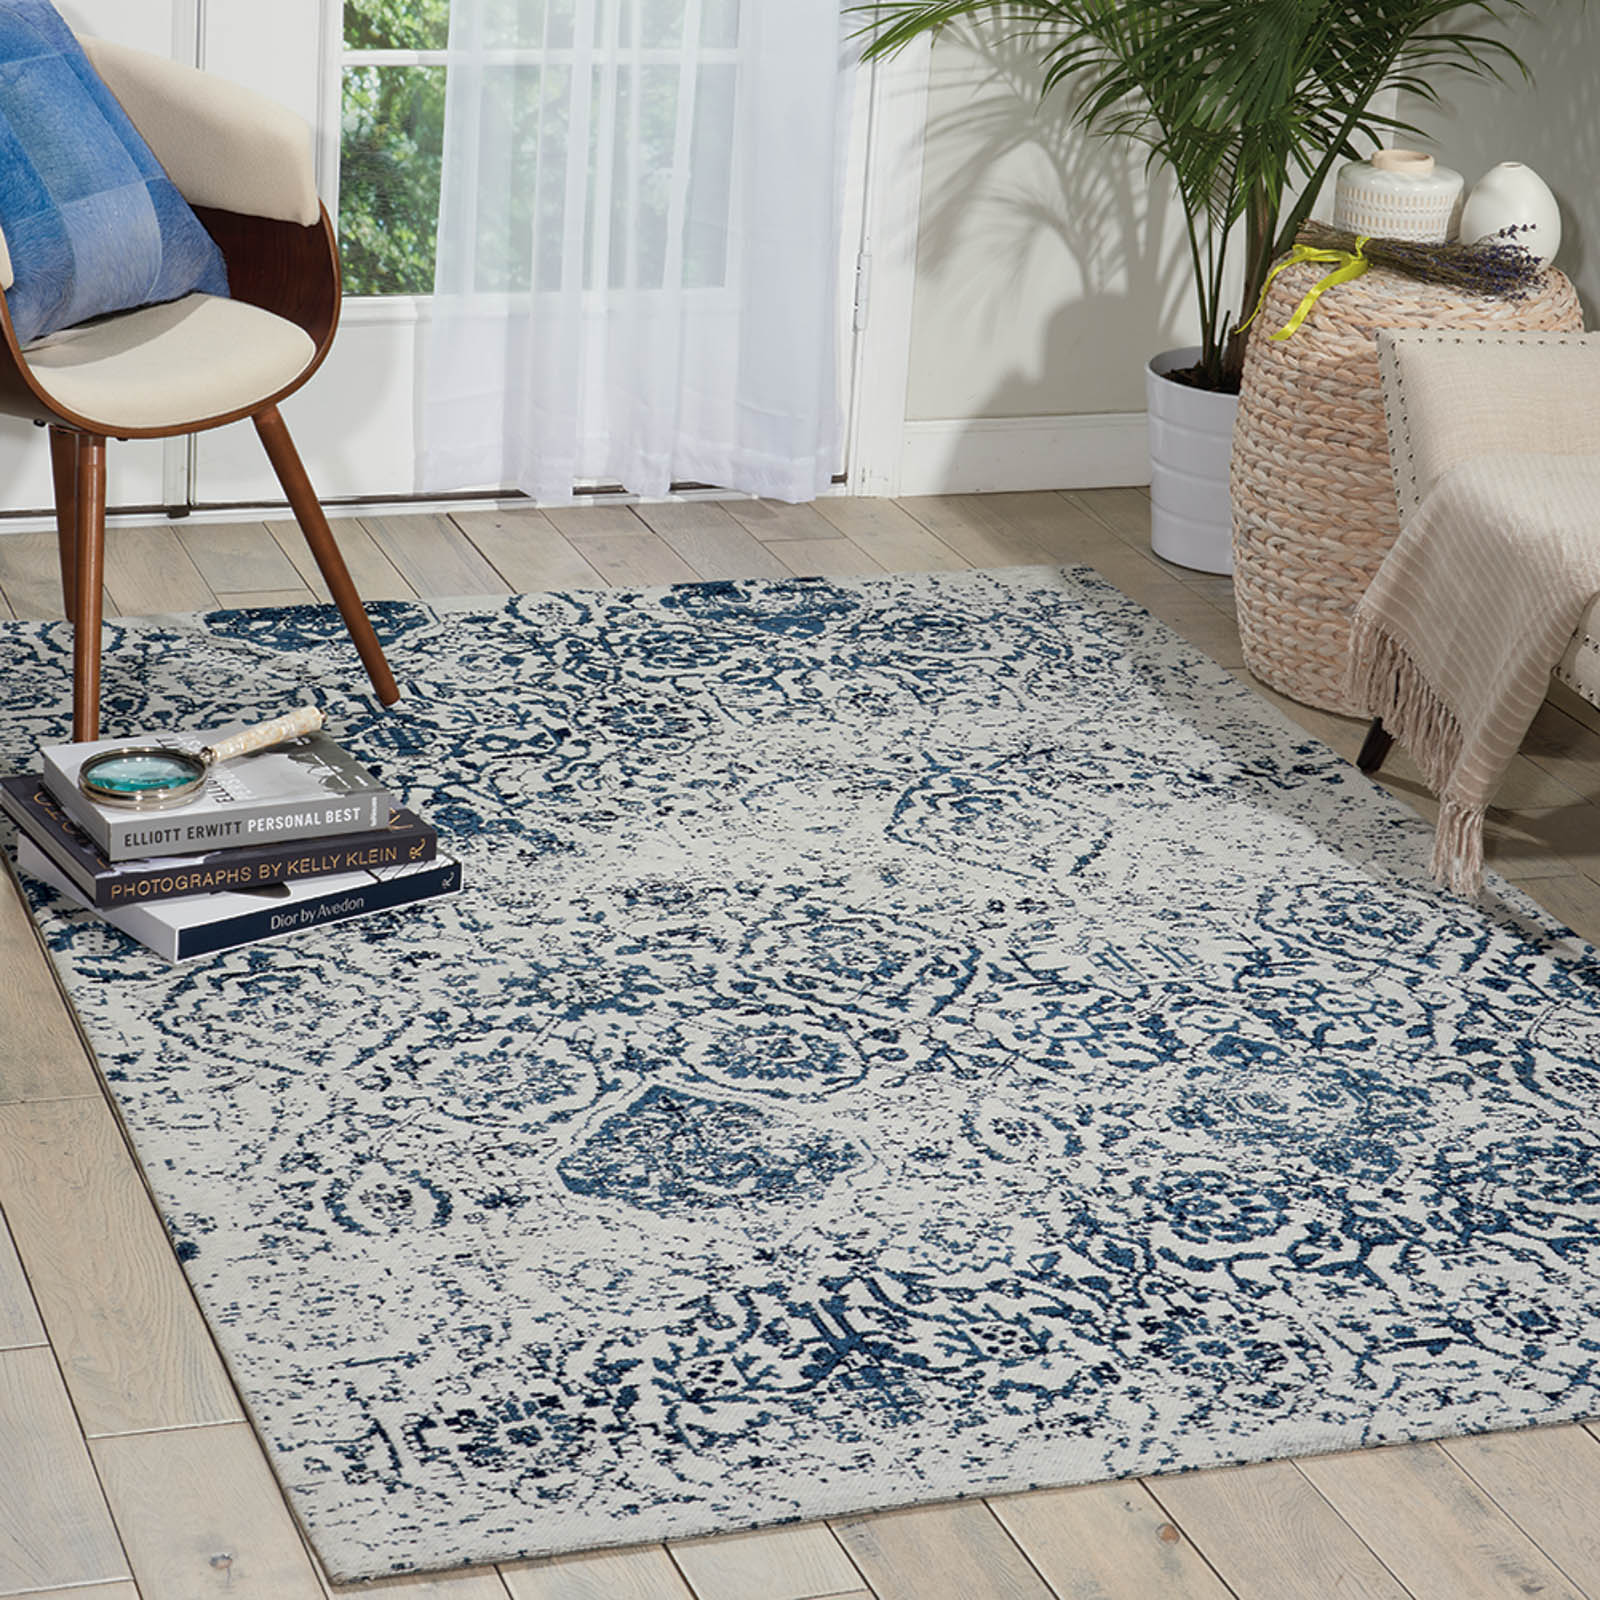 Damask Rugs DAS06 in Ivory and Navy by Nourison